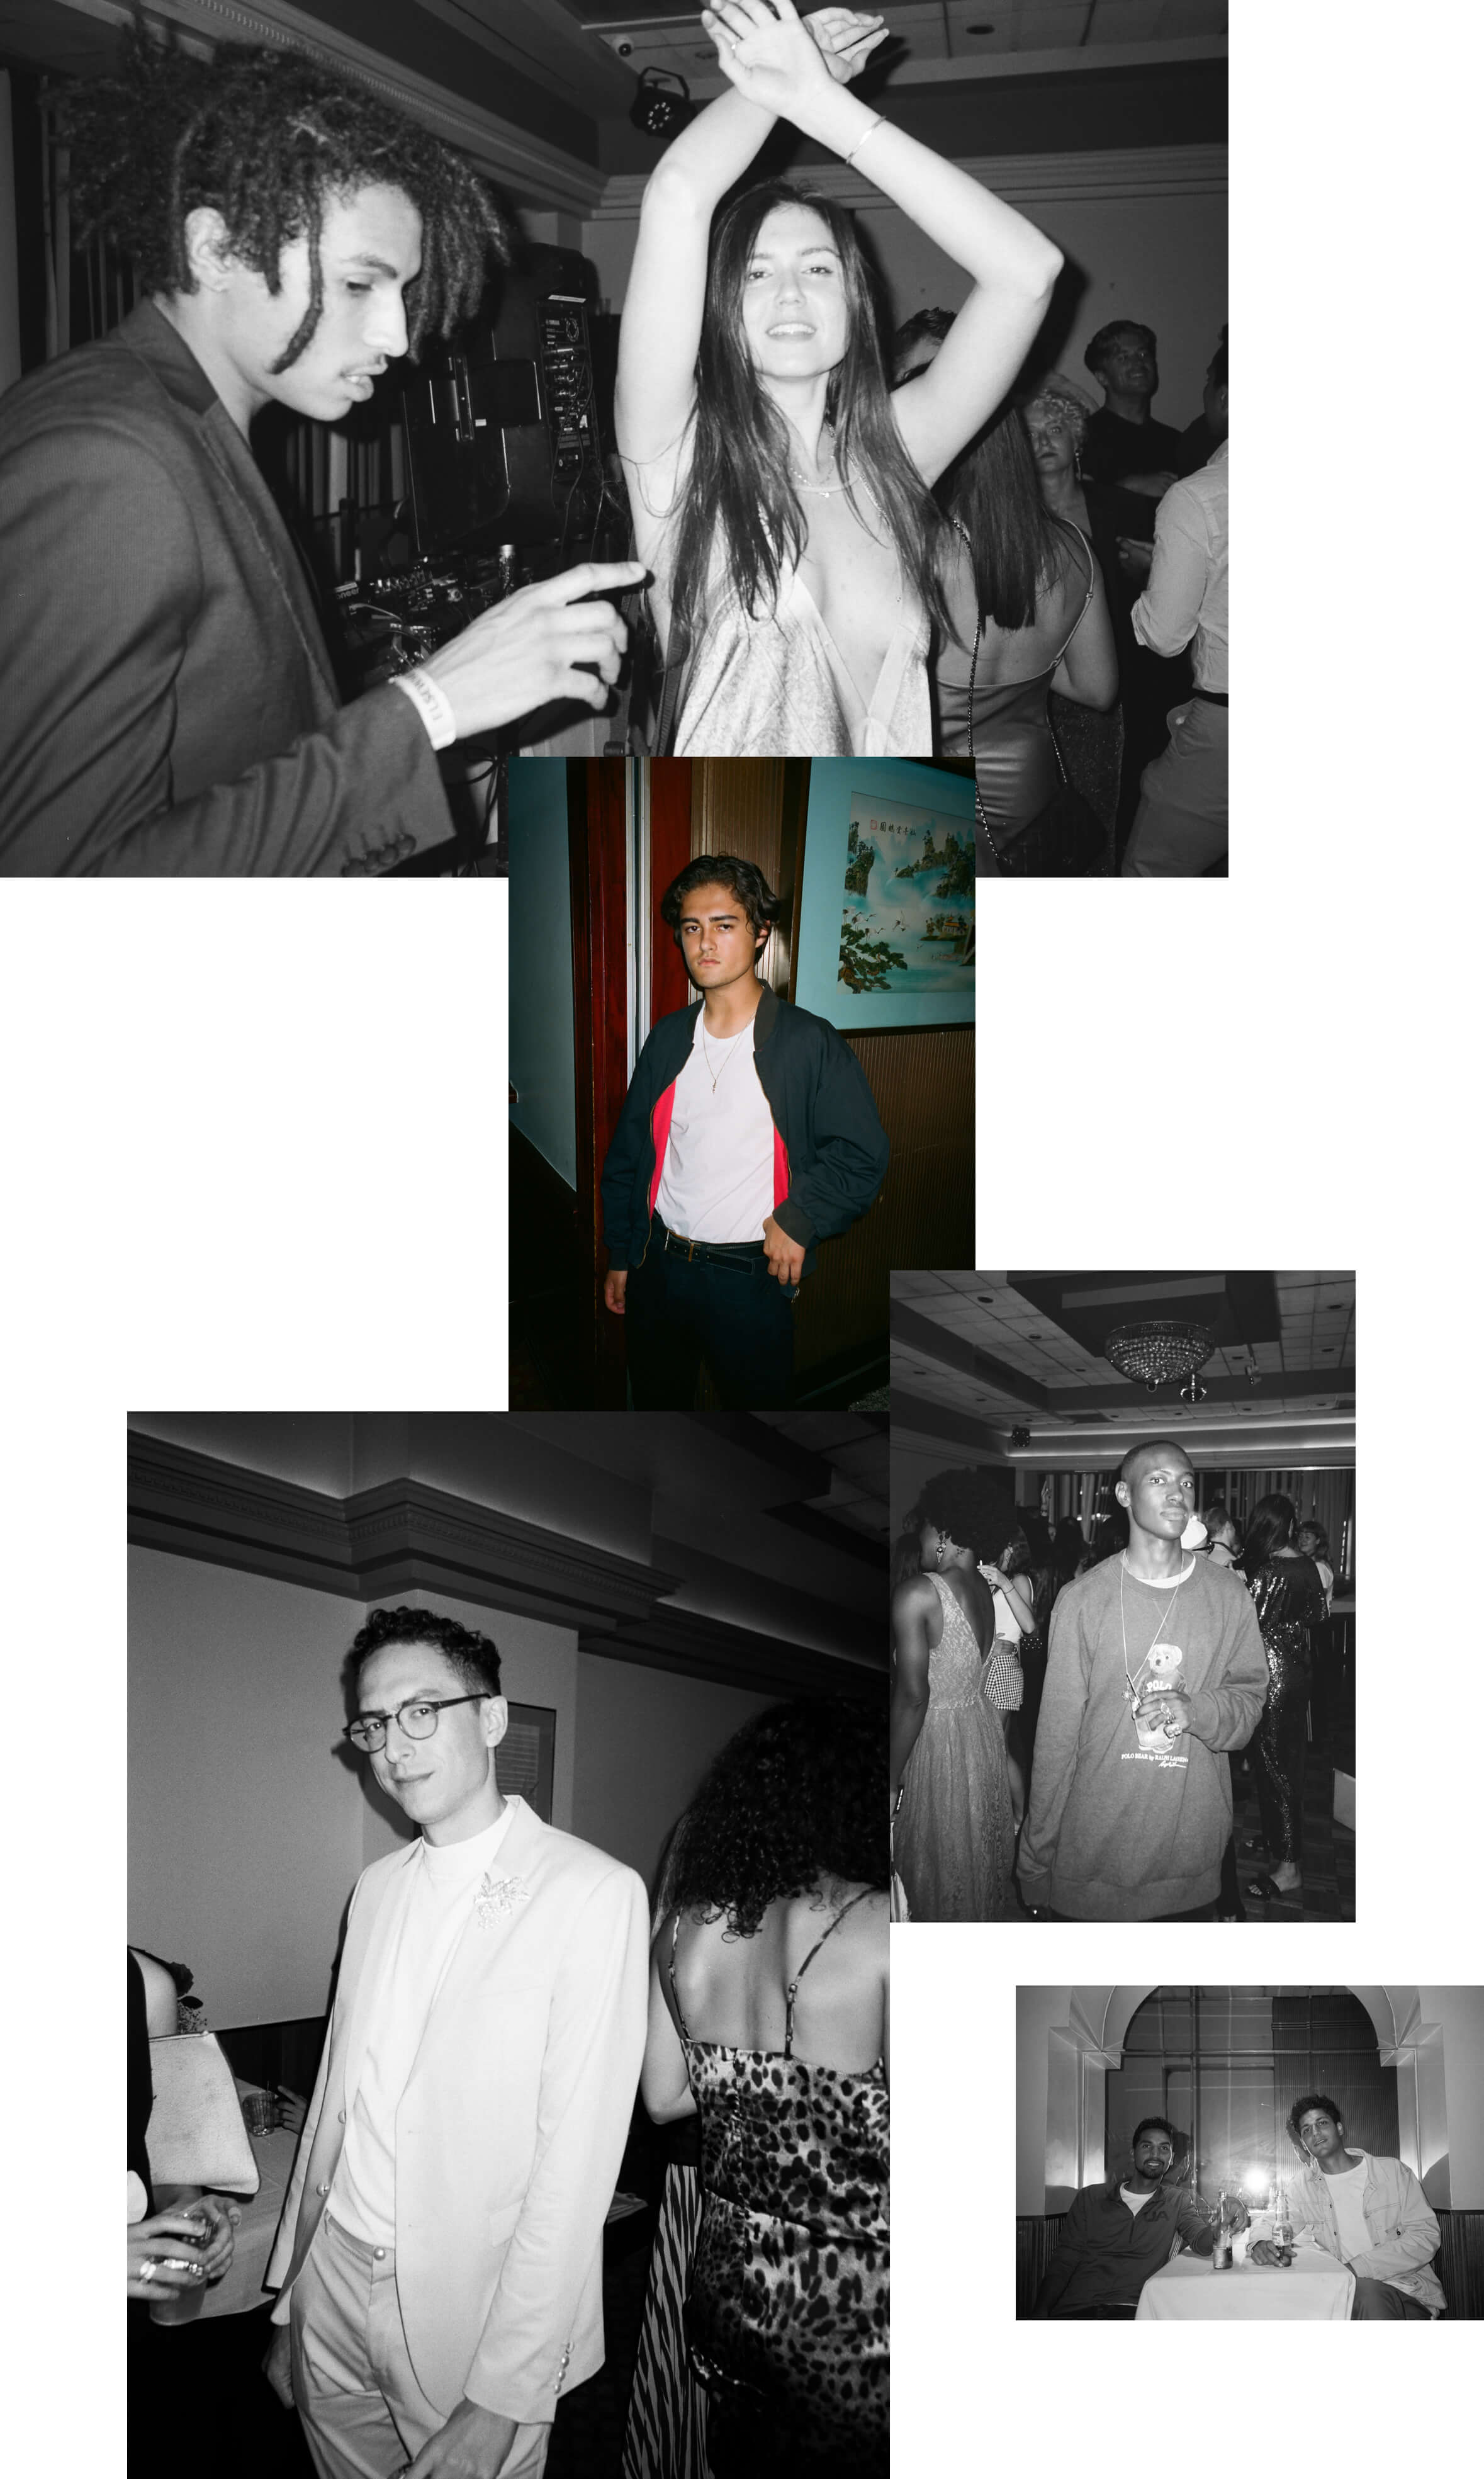 full width image collage of people dancing at BABOON prom night